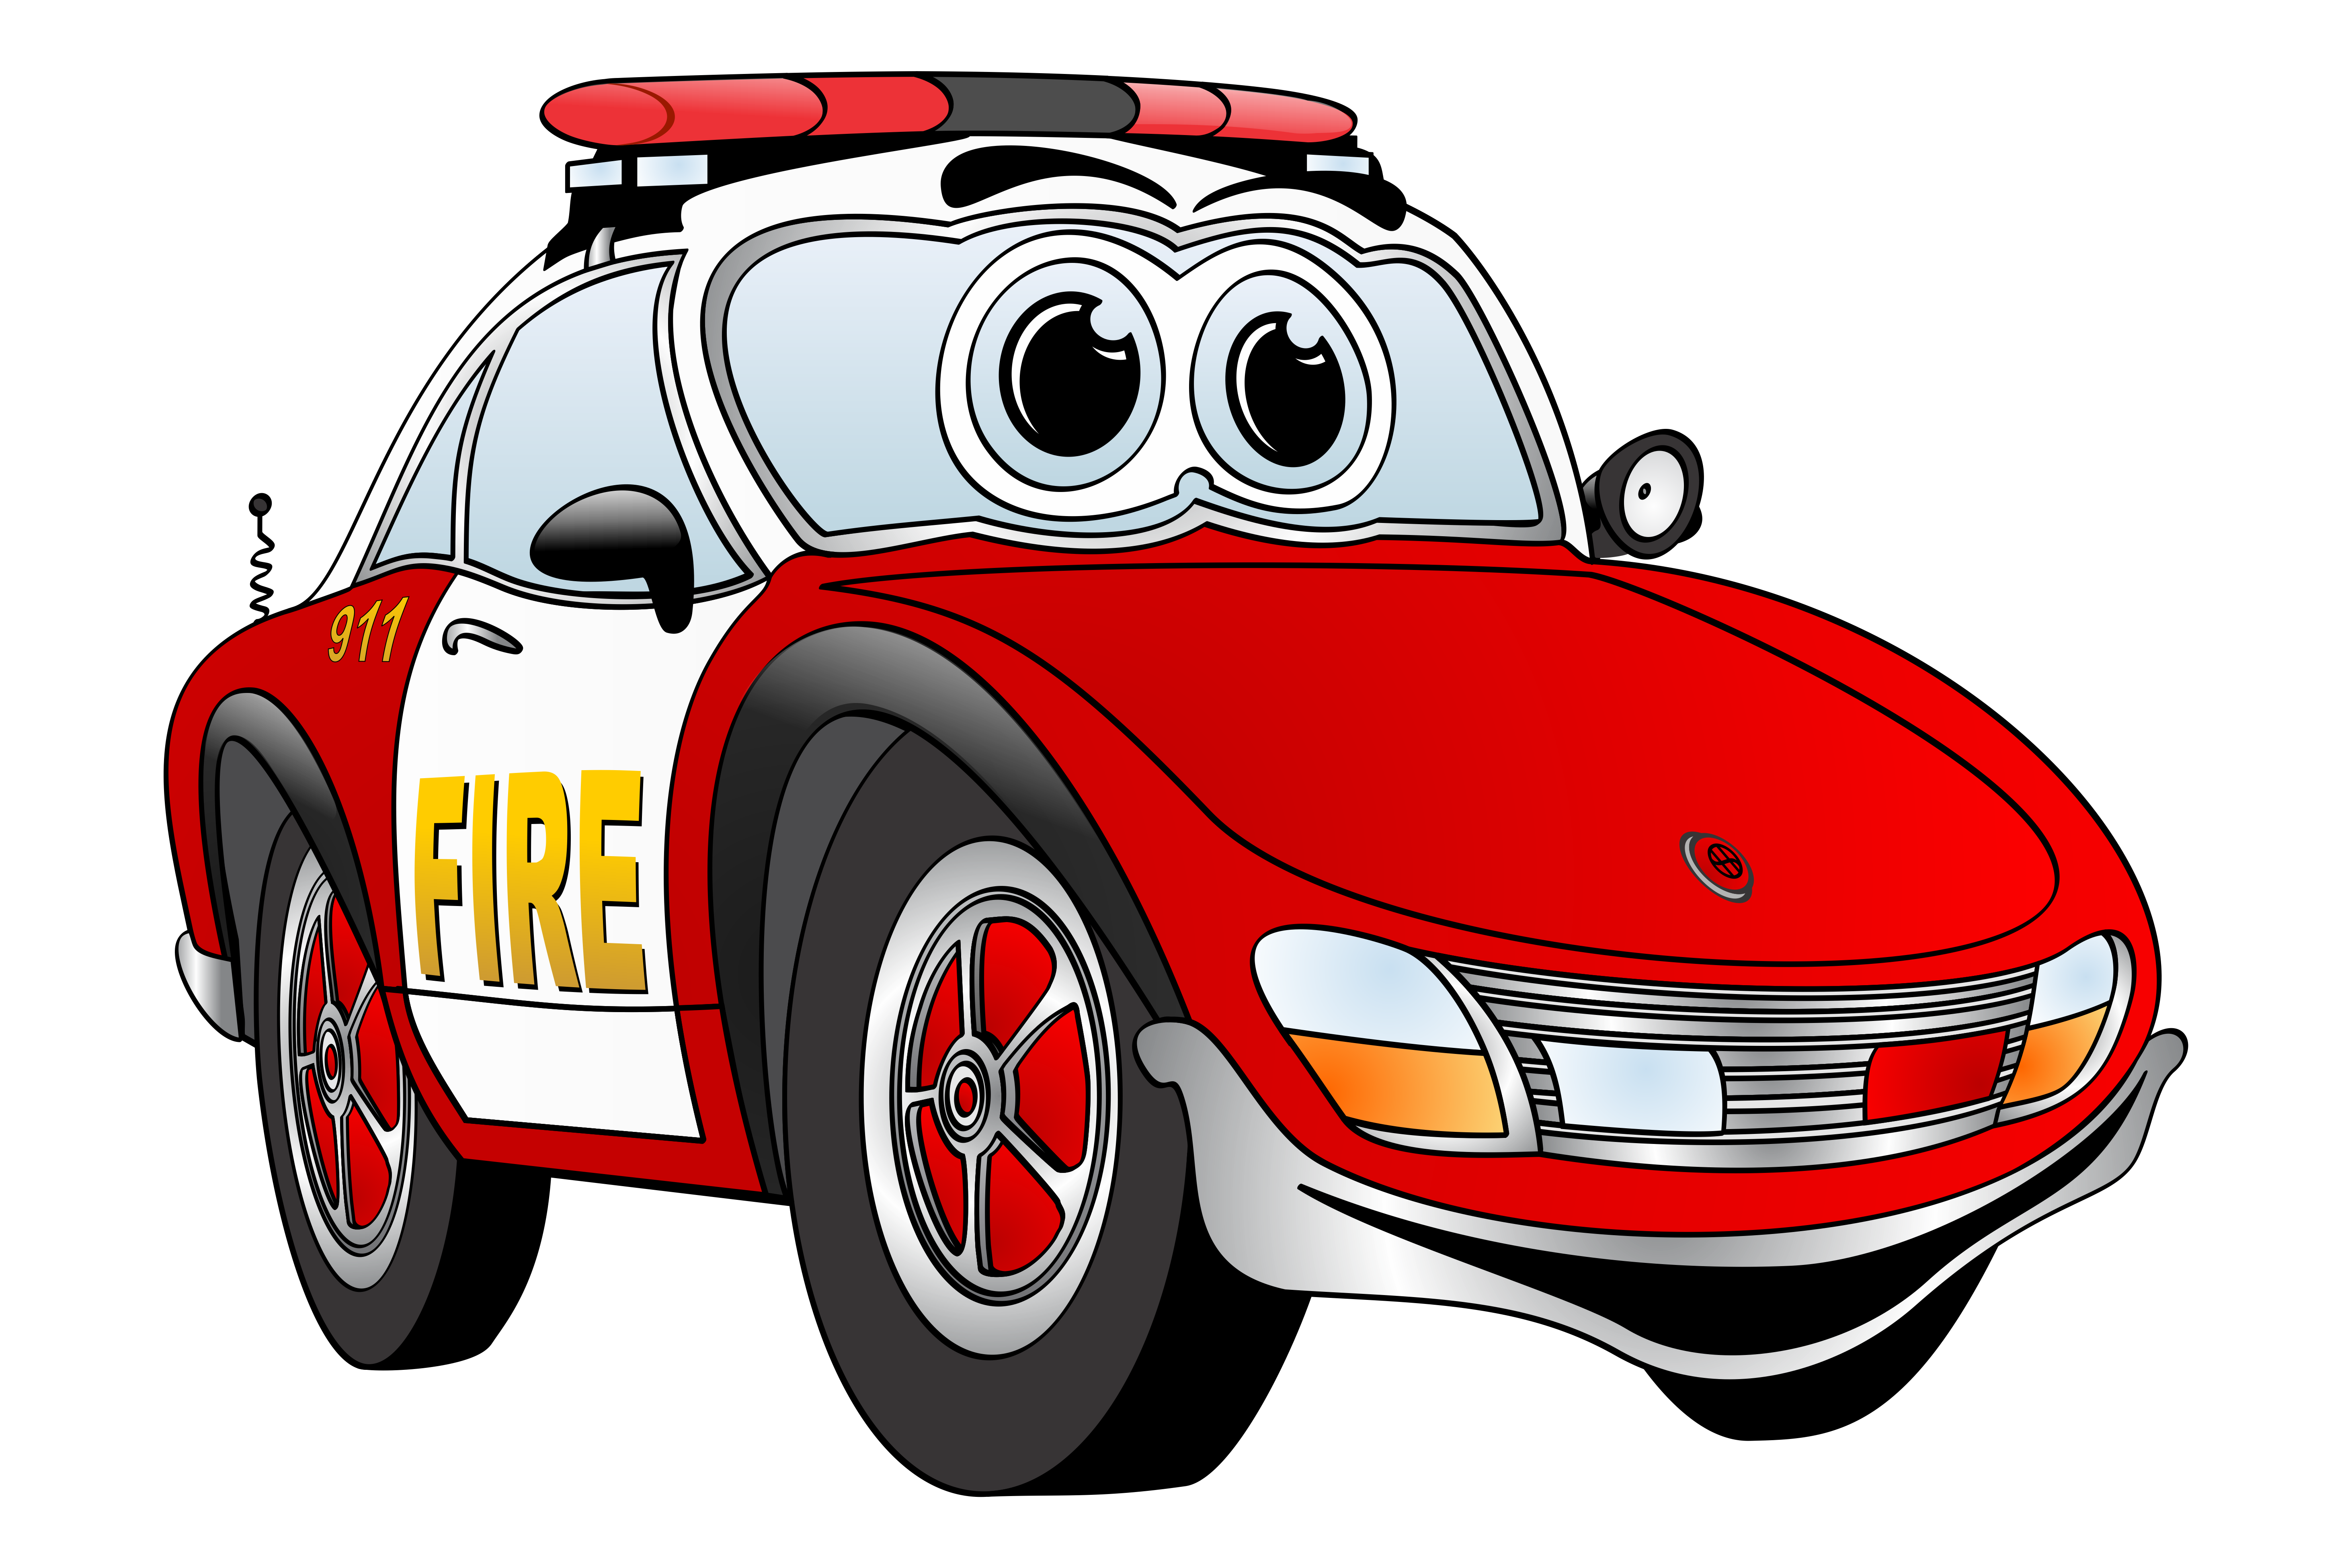 Convertible car clipart free Cartoon City On Fire | Clipart library - Free Clipart Images ... free